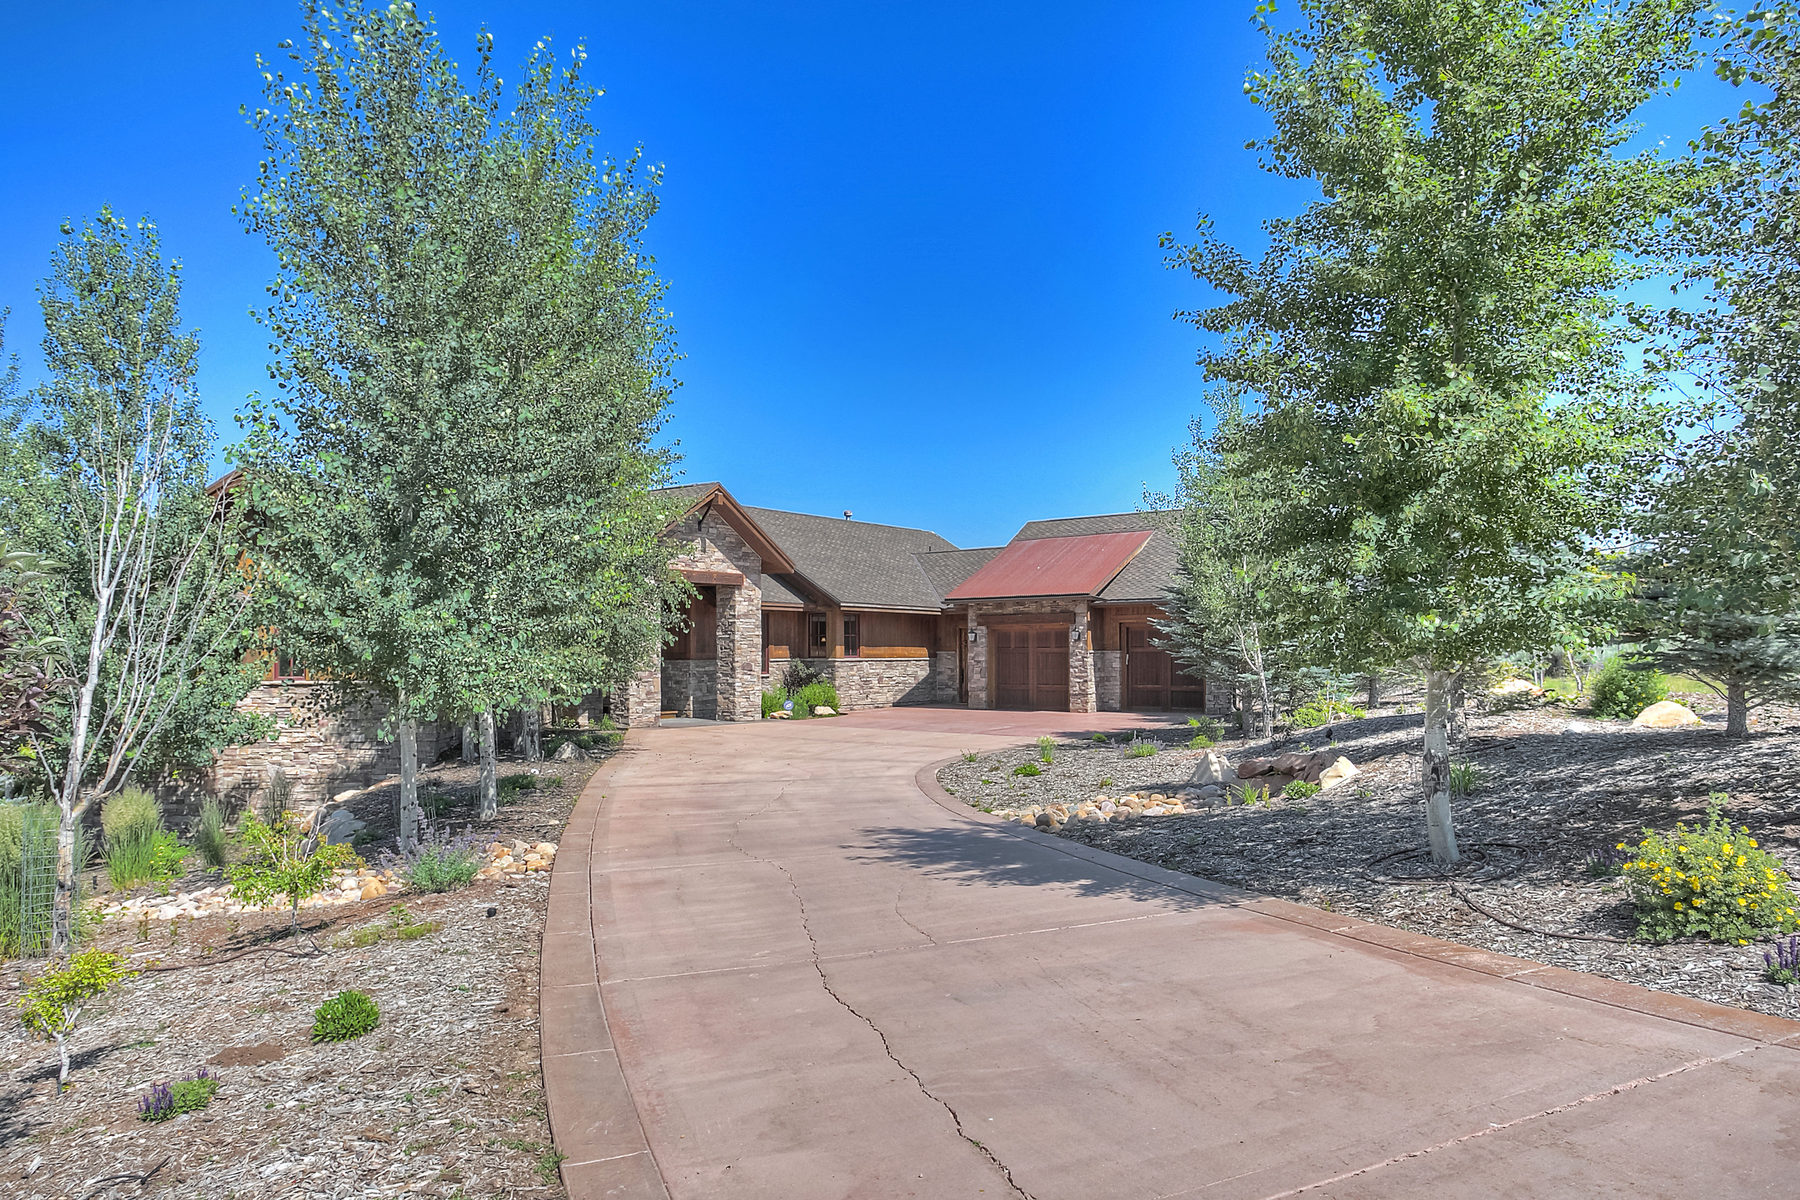 Single Family Home for Sale at Charming Mountain Retreat with Views 3319 Westview Trl Park City, Utah 84098 United States